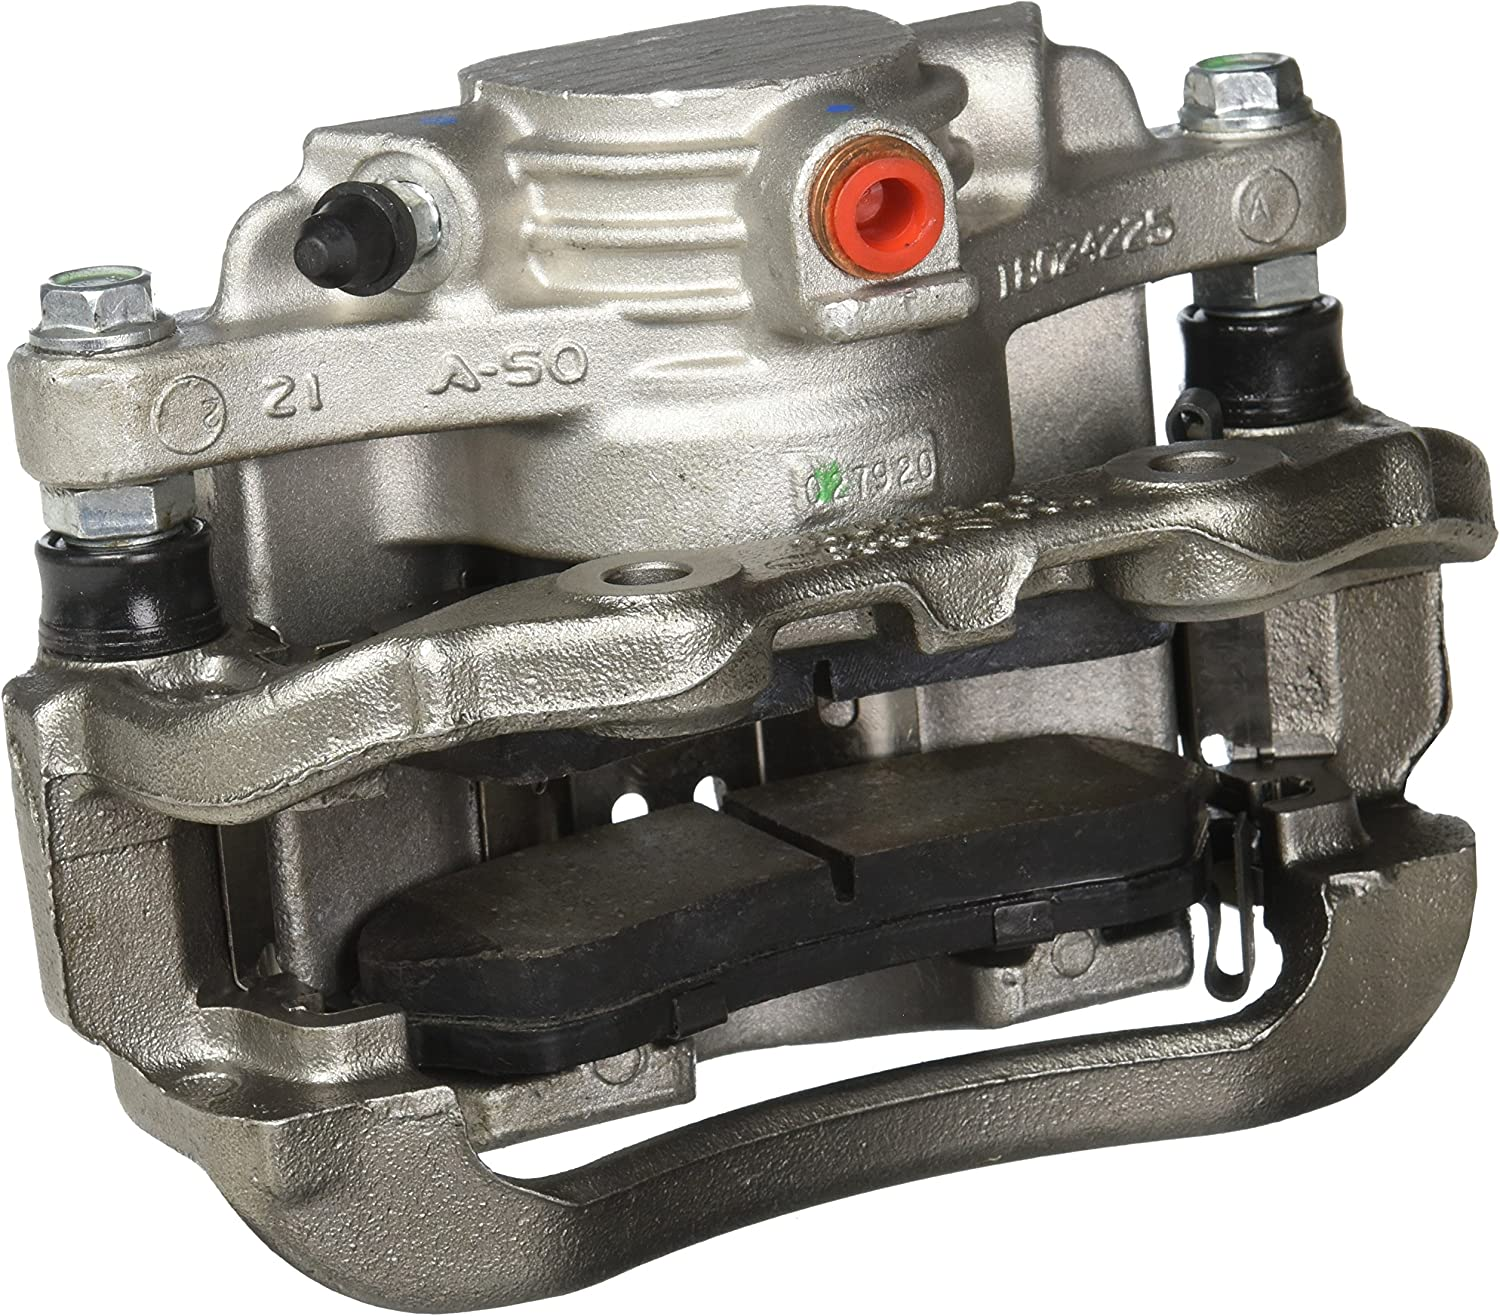 ACDelco 18R1487F1 Professional Rear Brake Max 58% OFF Assembly Disc Manufacturer direct delivery Caliper